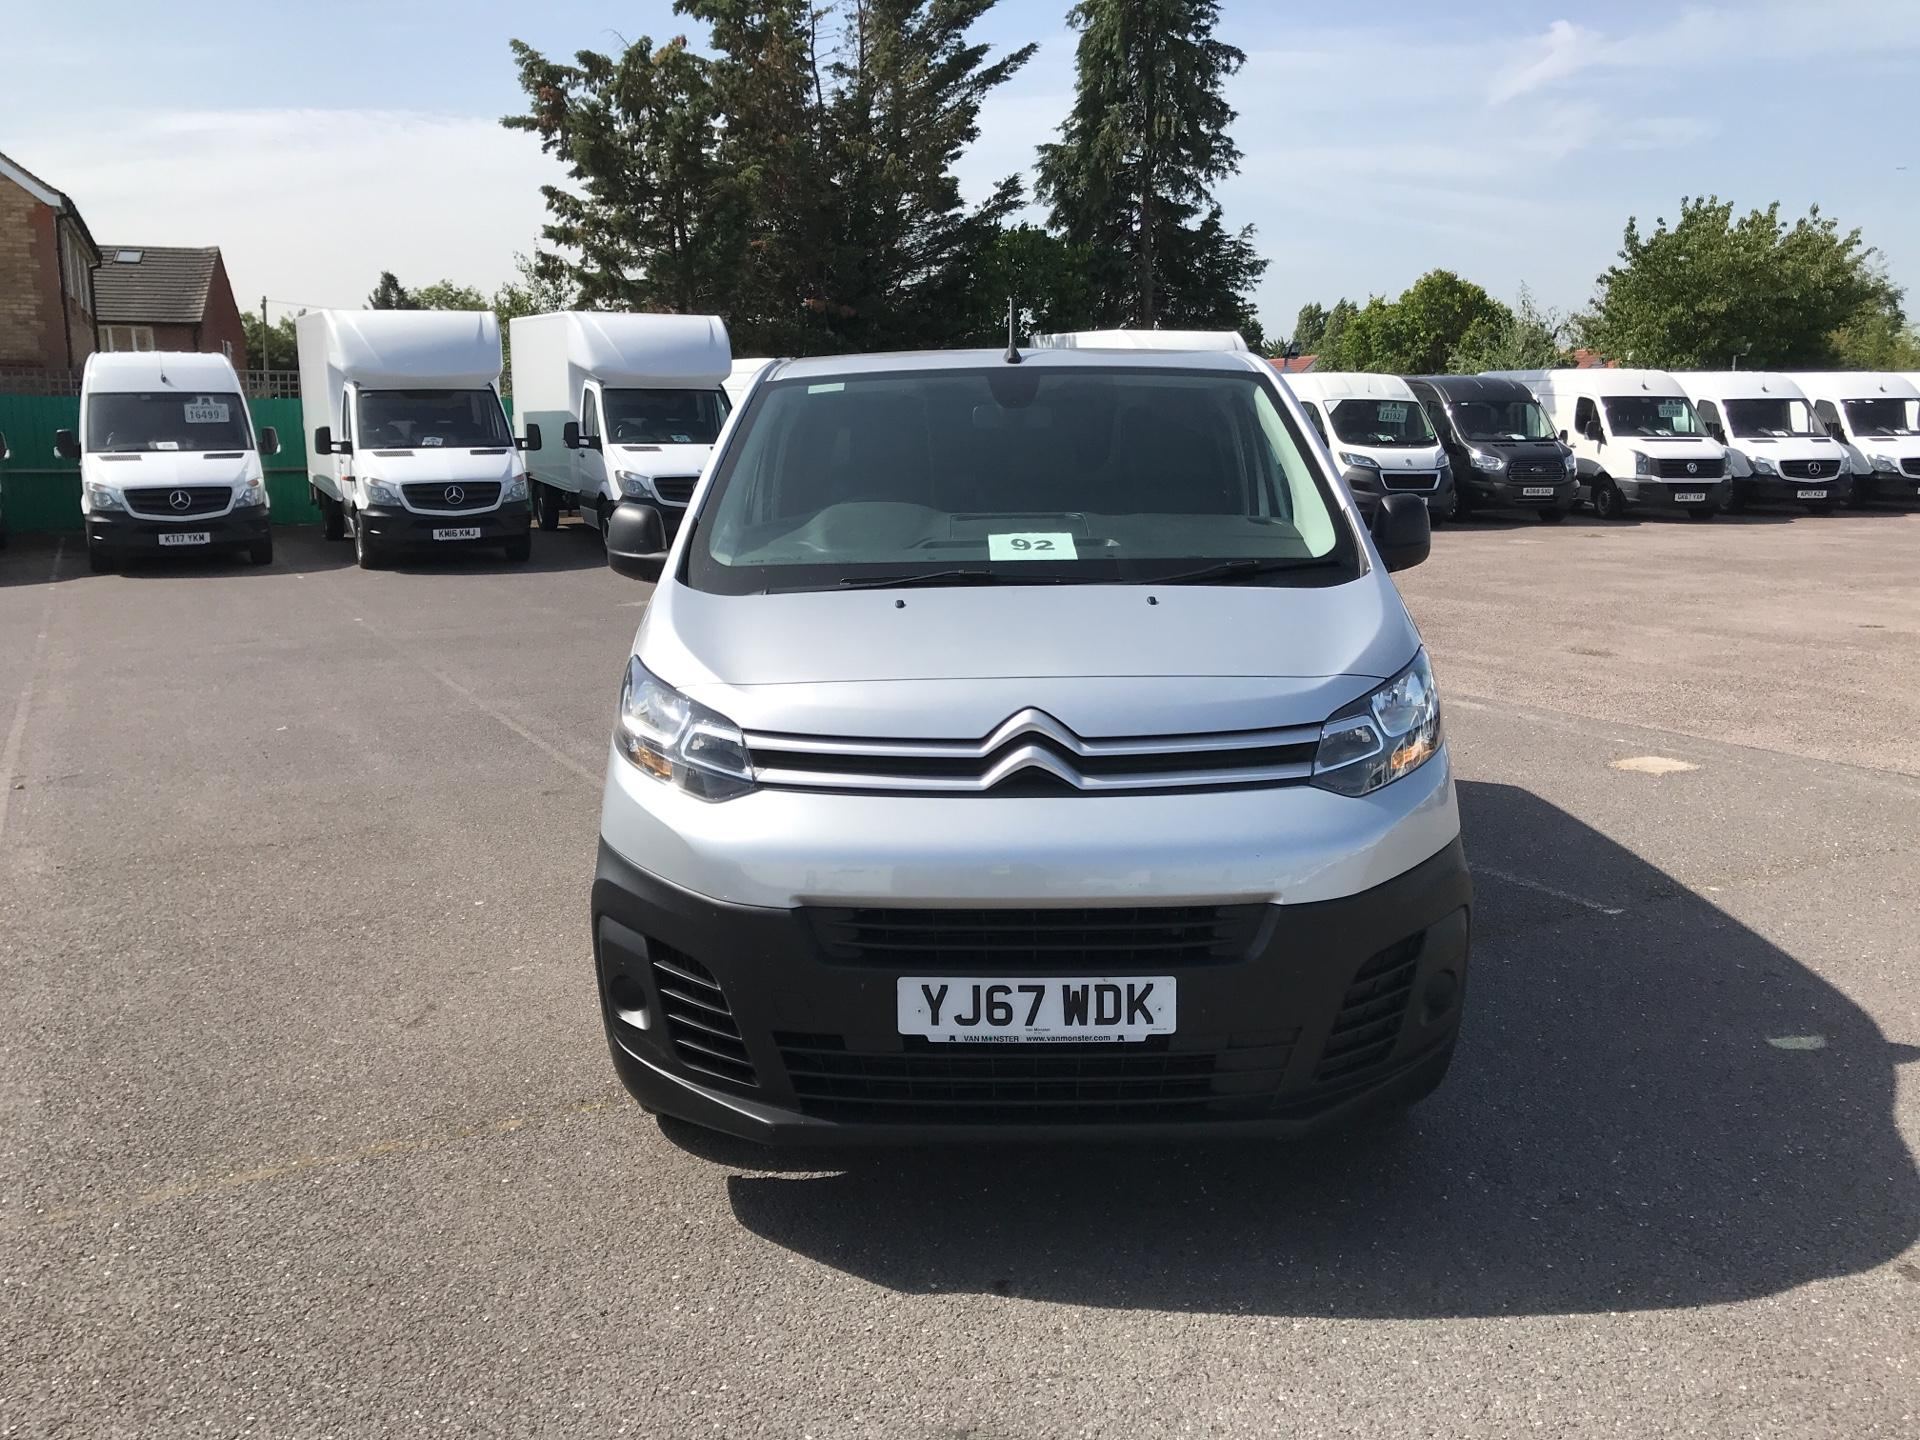 2017 Citroen Dispatch  M DIESEL 1000 1.6 BLUE HDI 95 ENTERPRISE EURO 6 (YJ67WDK) Image 8